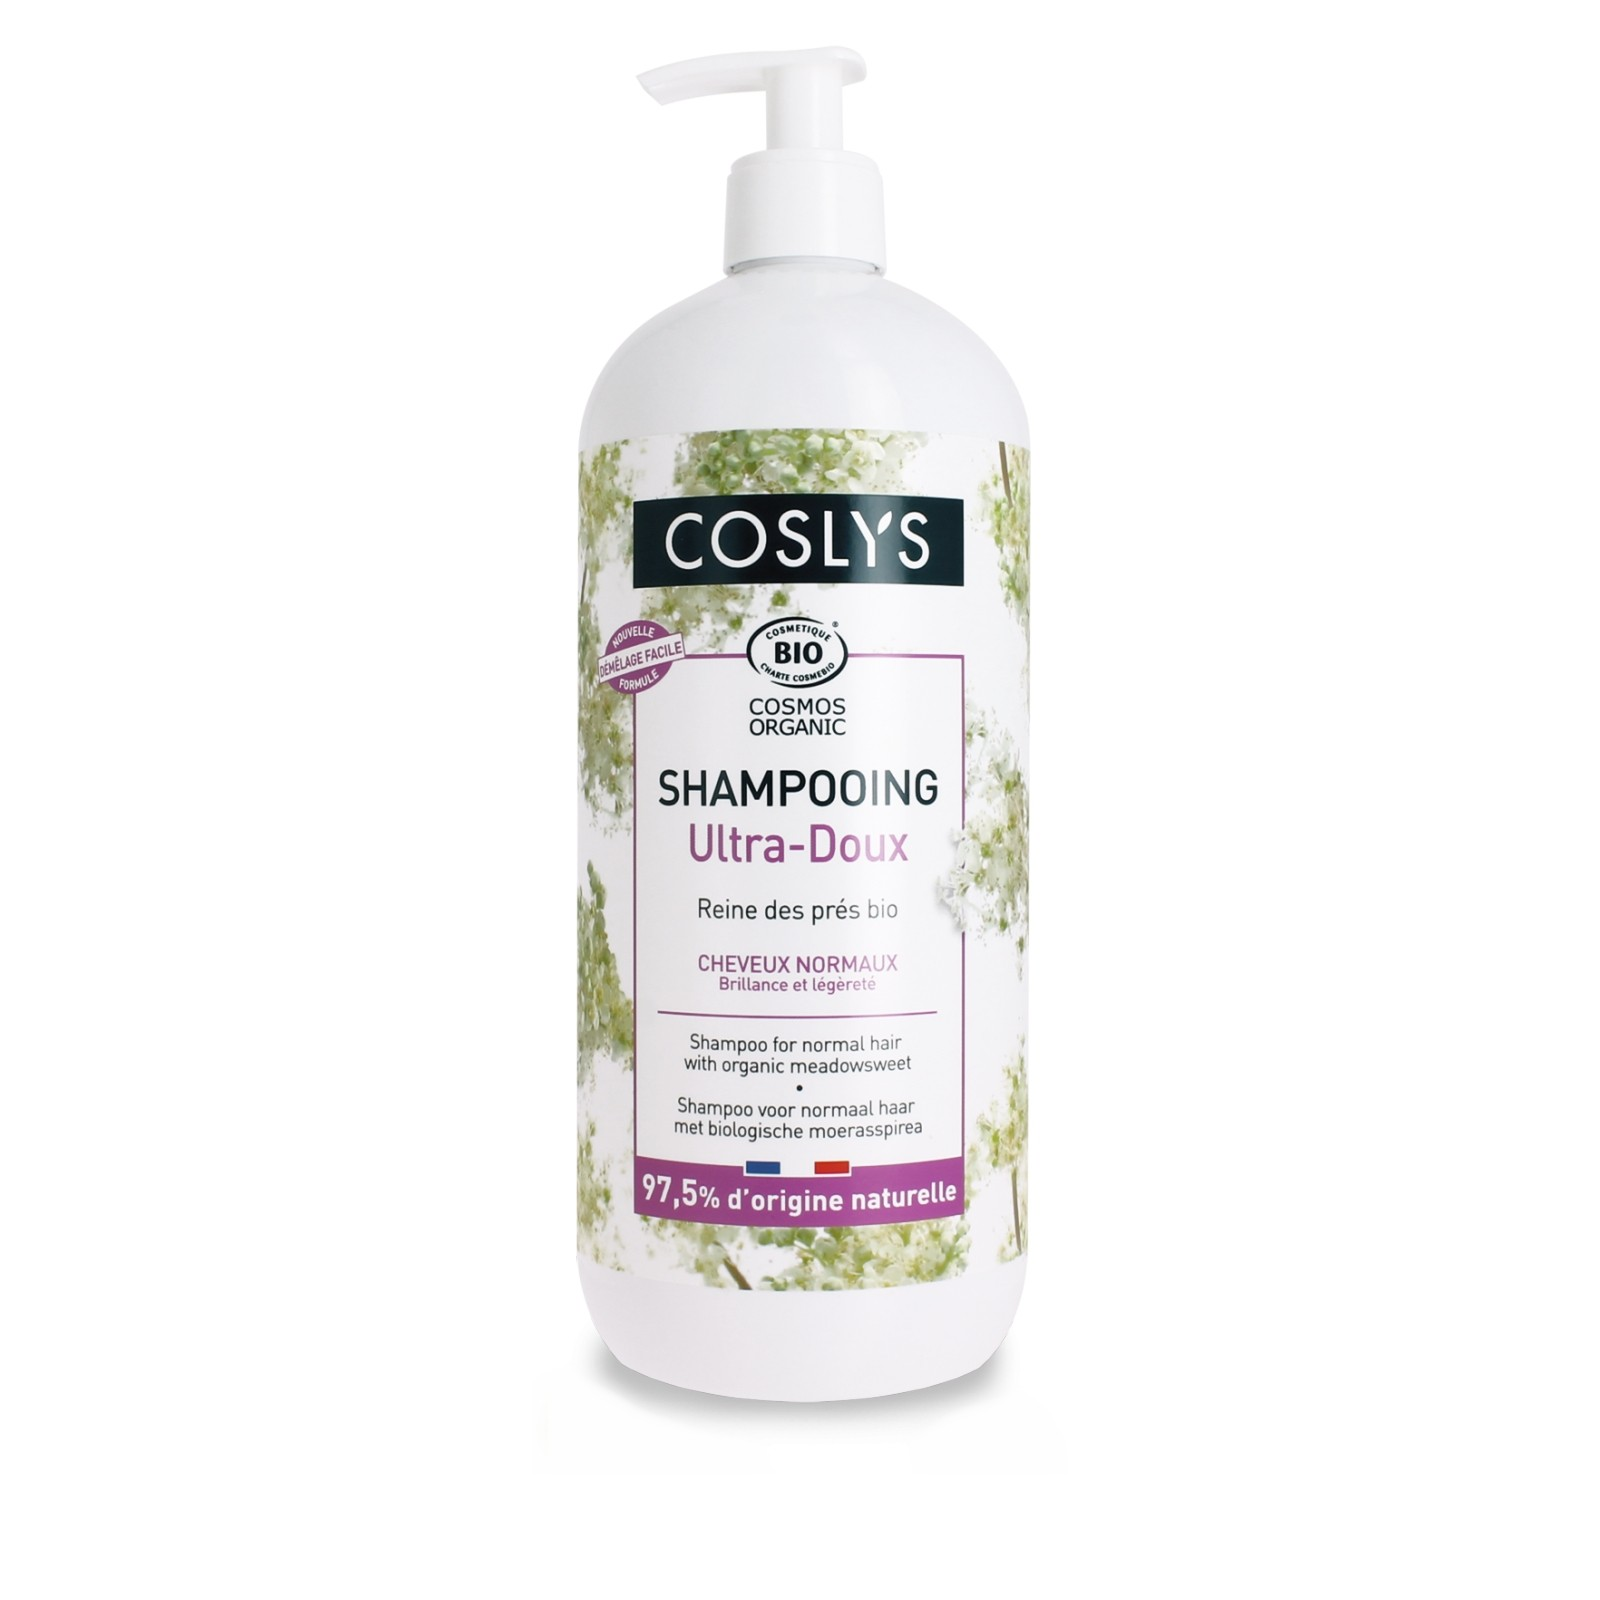 COSLYS Shampoing cheveux normaux  + pompe Bio 1 litre